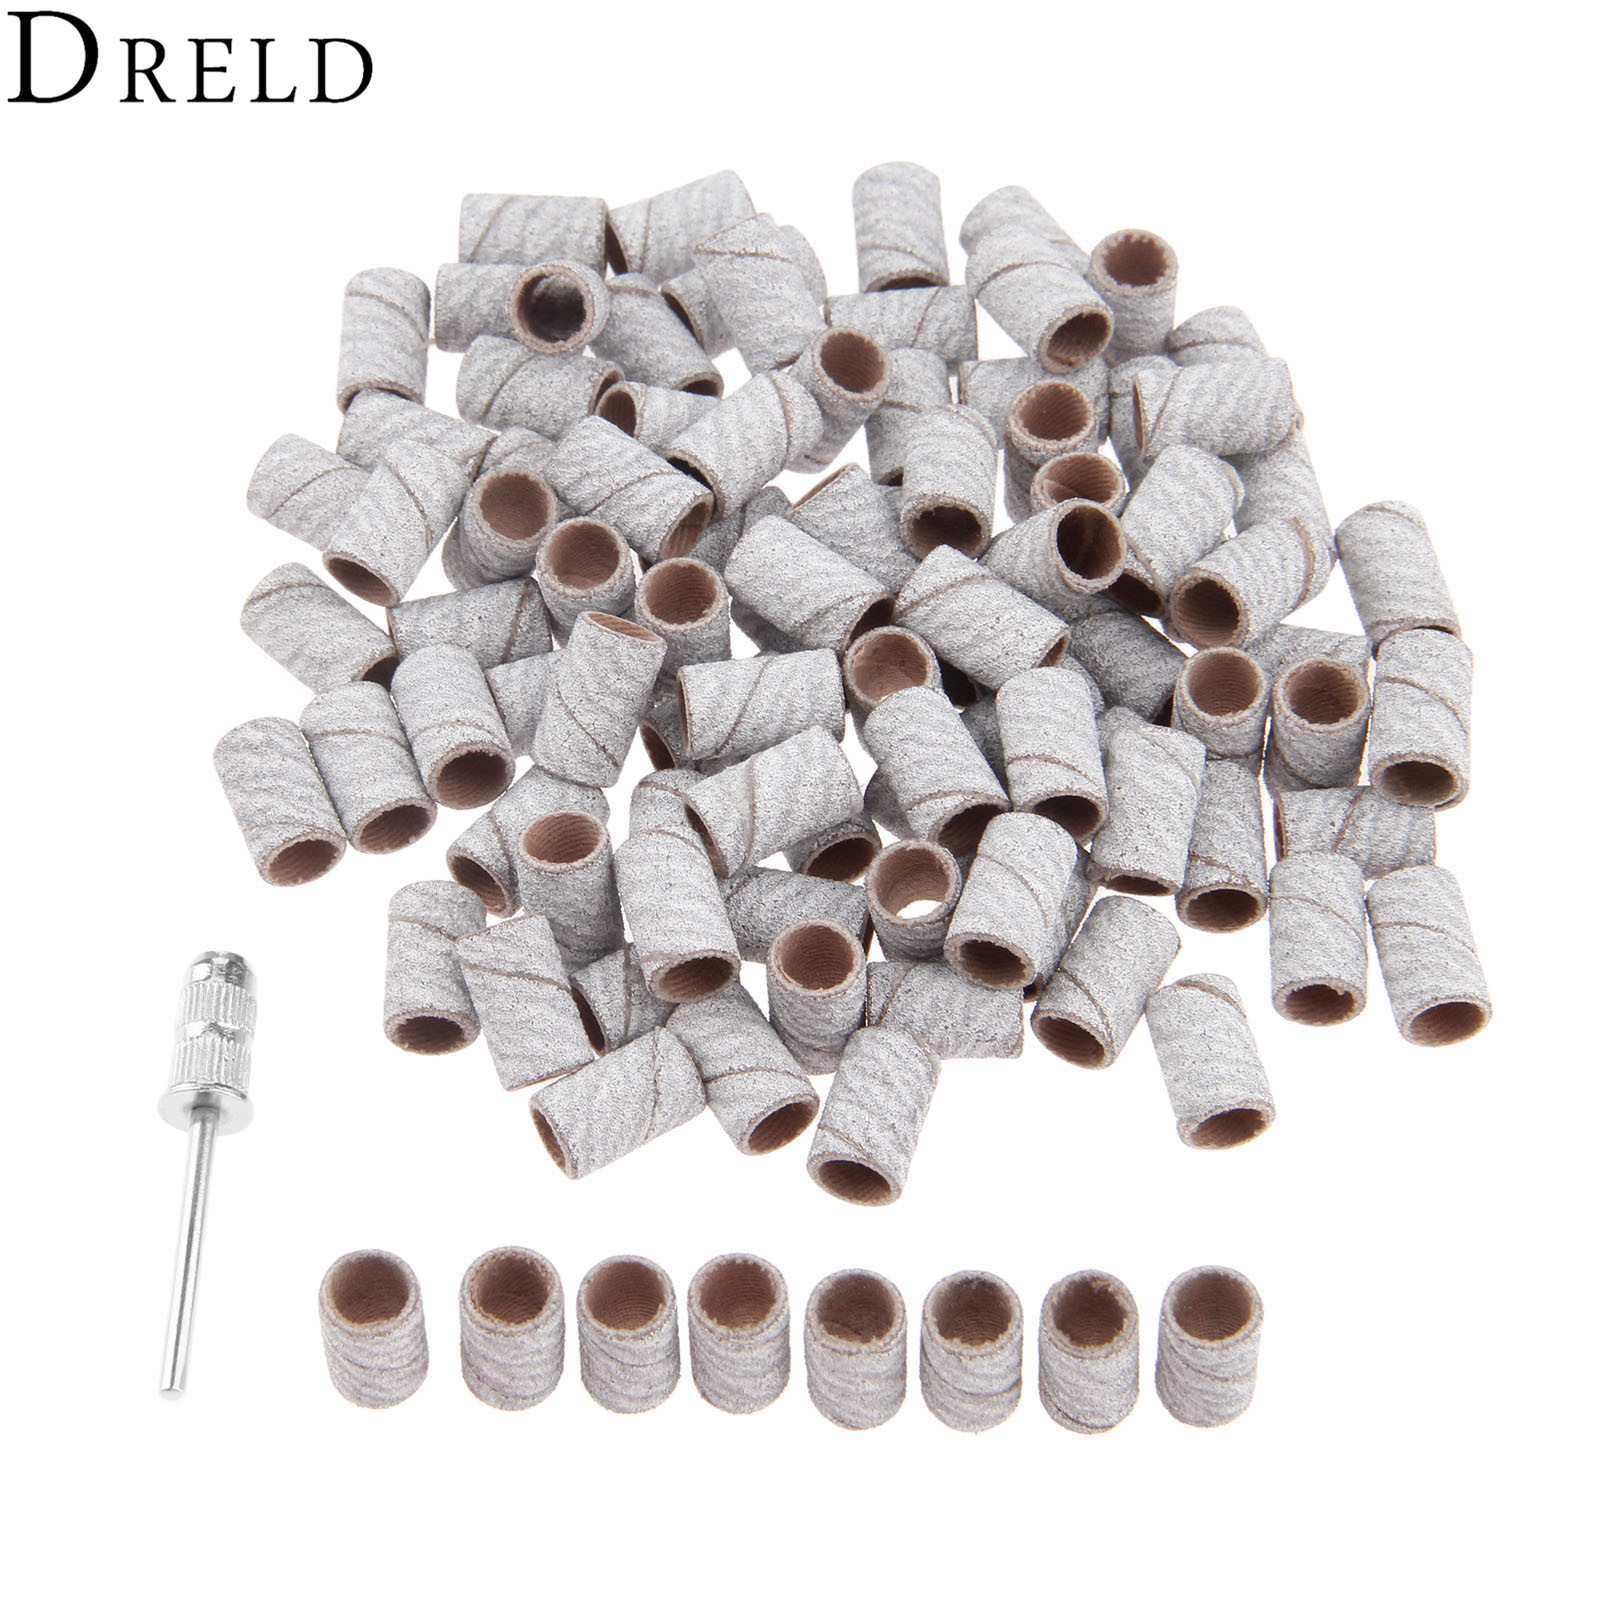 DRELD 100Pcs 6.3mm Drum Sanding Band Nail Drill Bits + 1Pc Band Mandrel 2.35 Shank Polishing For Metals Woods Dremel Accessories